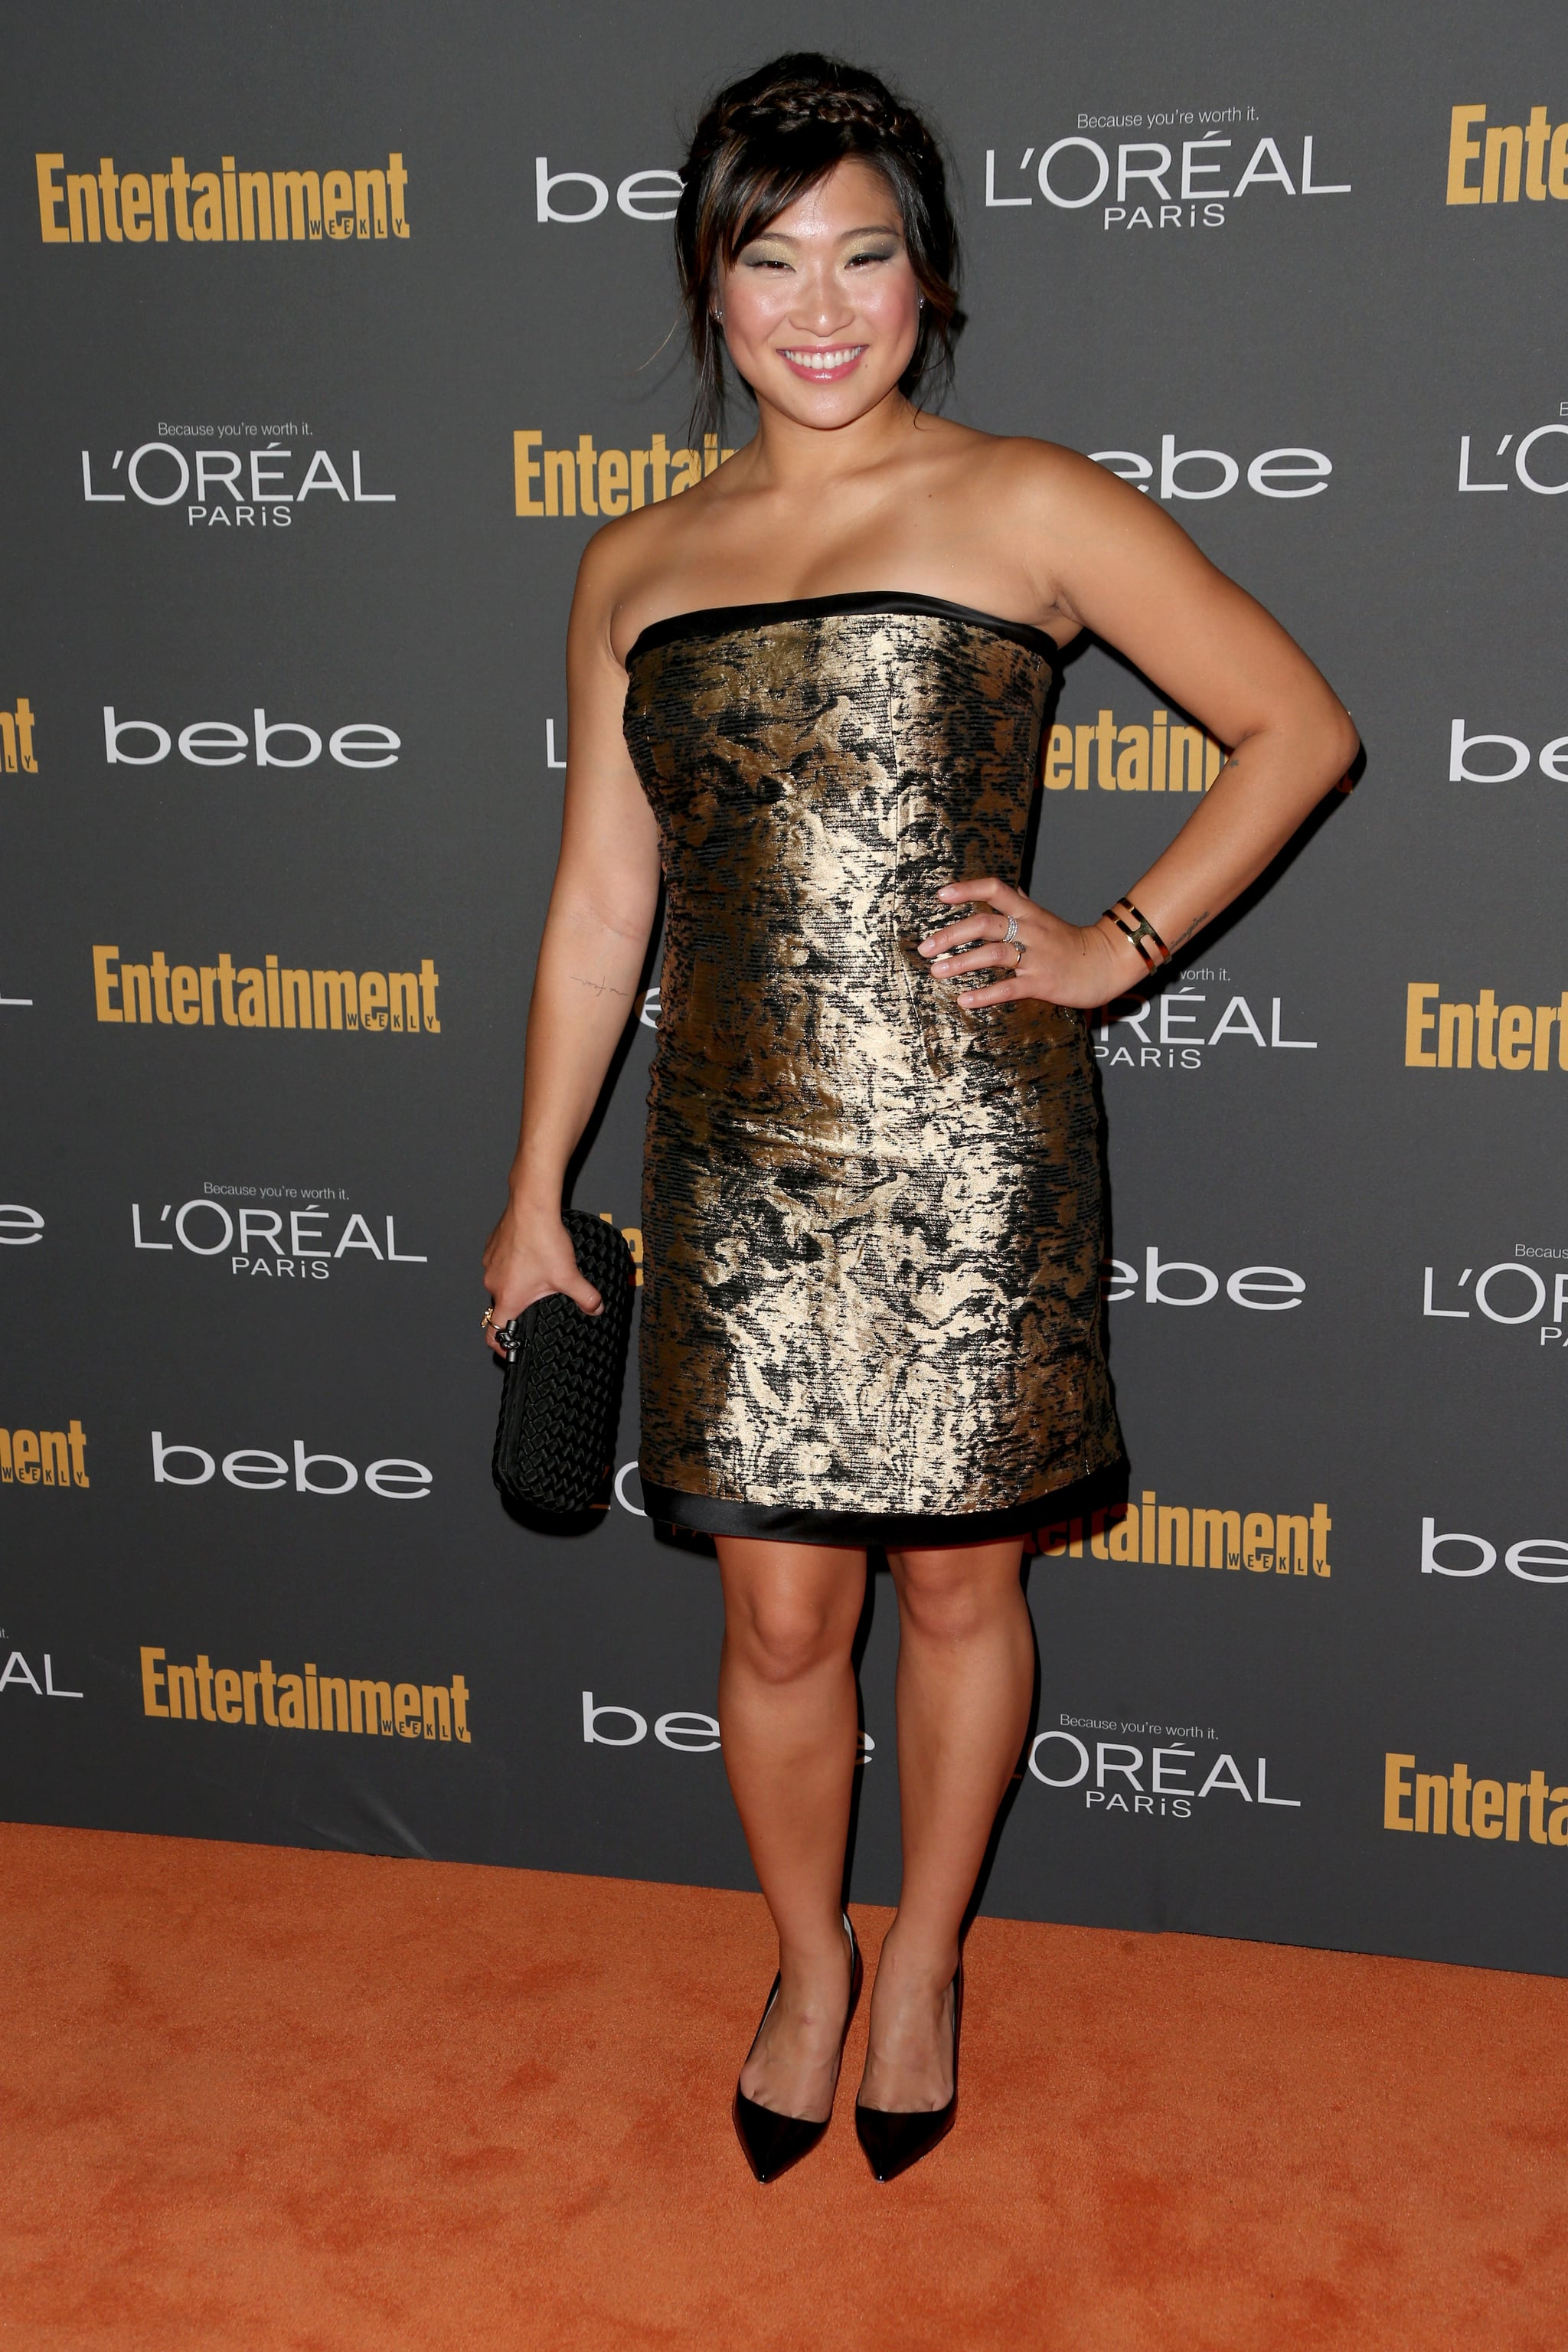 Jenna Ushkowitz shined in a gold metallic strapless minidress and black add-ons at the Entertainment Weekly pre-Emmys party.